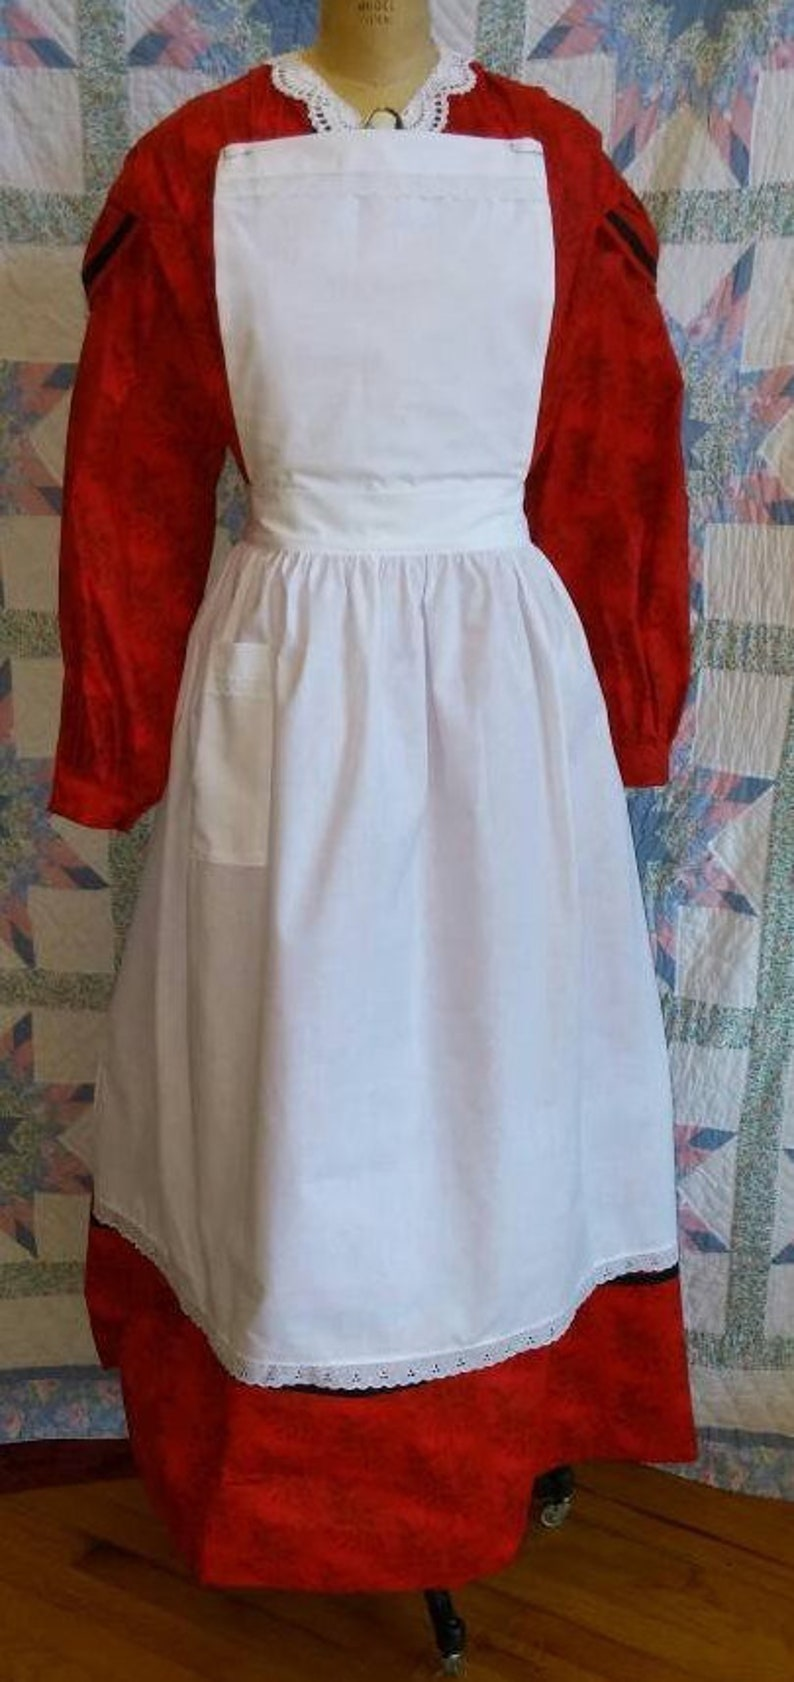 Victorian Edwardian Apron, Maid Costume & Patterns Victorian Womens Pinner Apron $25.00 AT vintagedancer.com